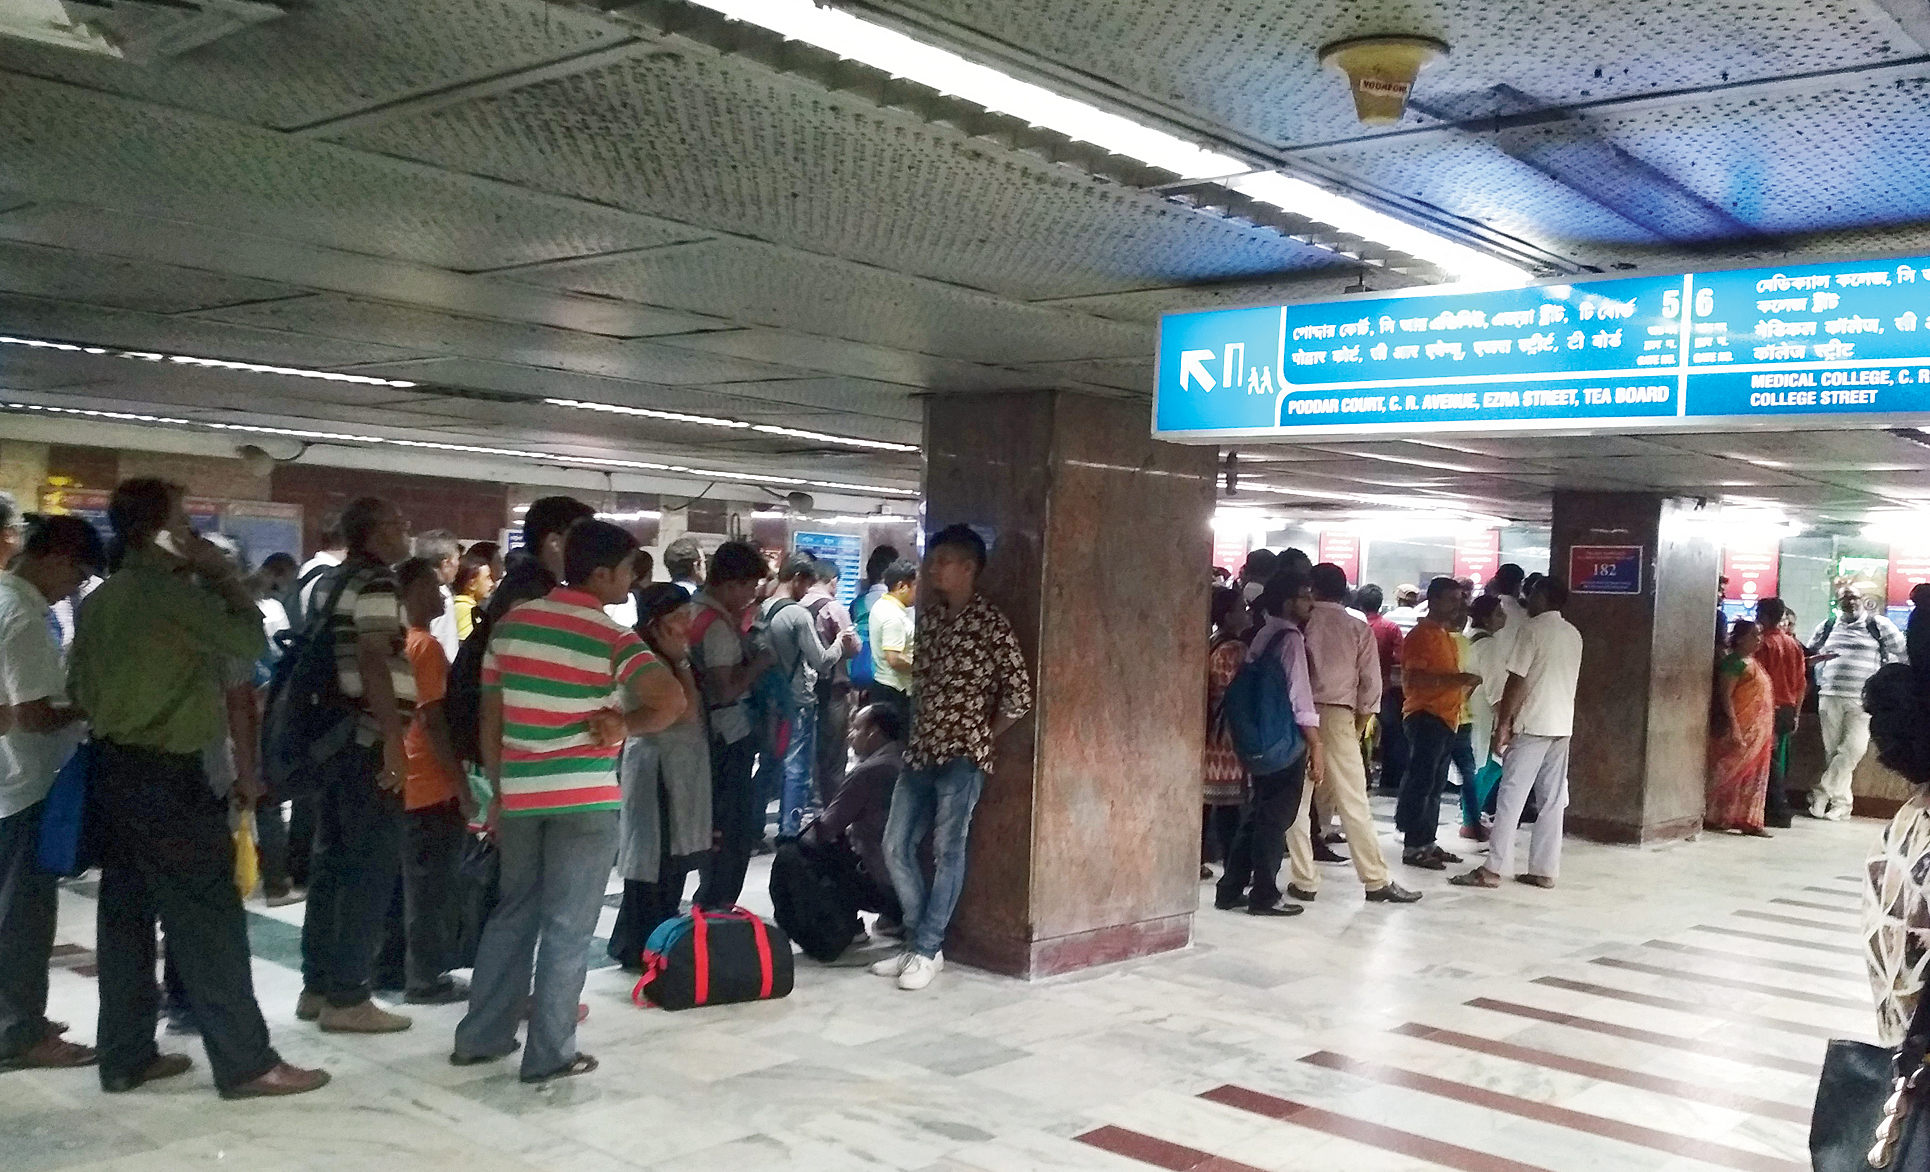 A crowded Chandni Chowk Metro station around 8.51pm